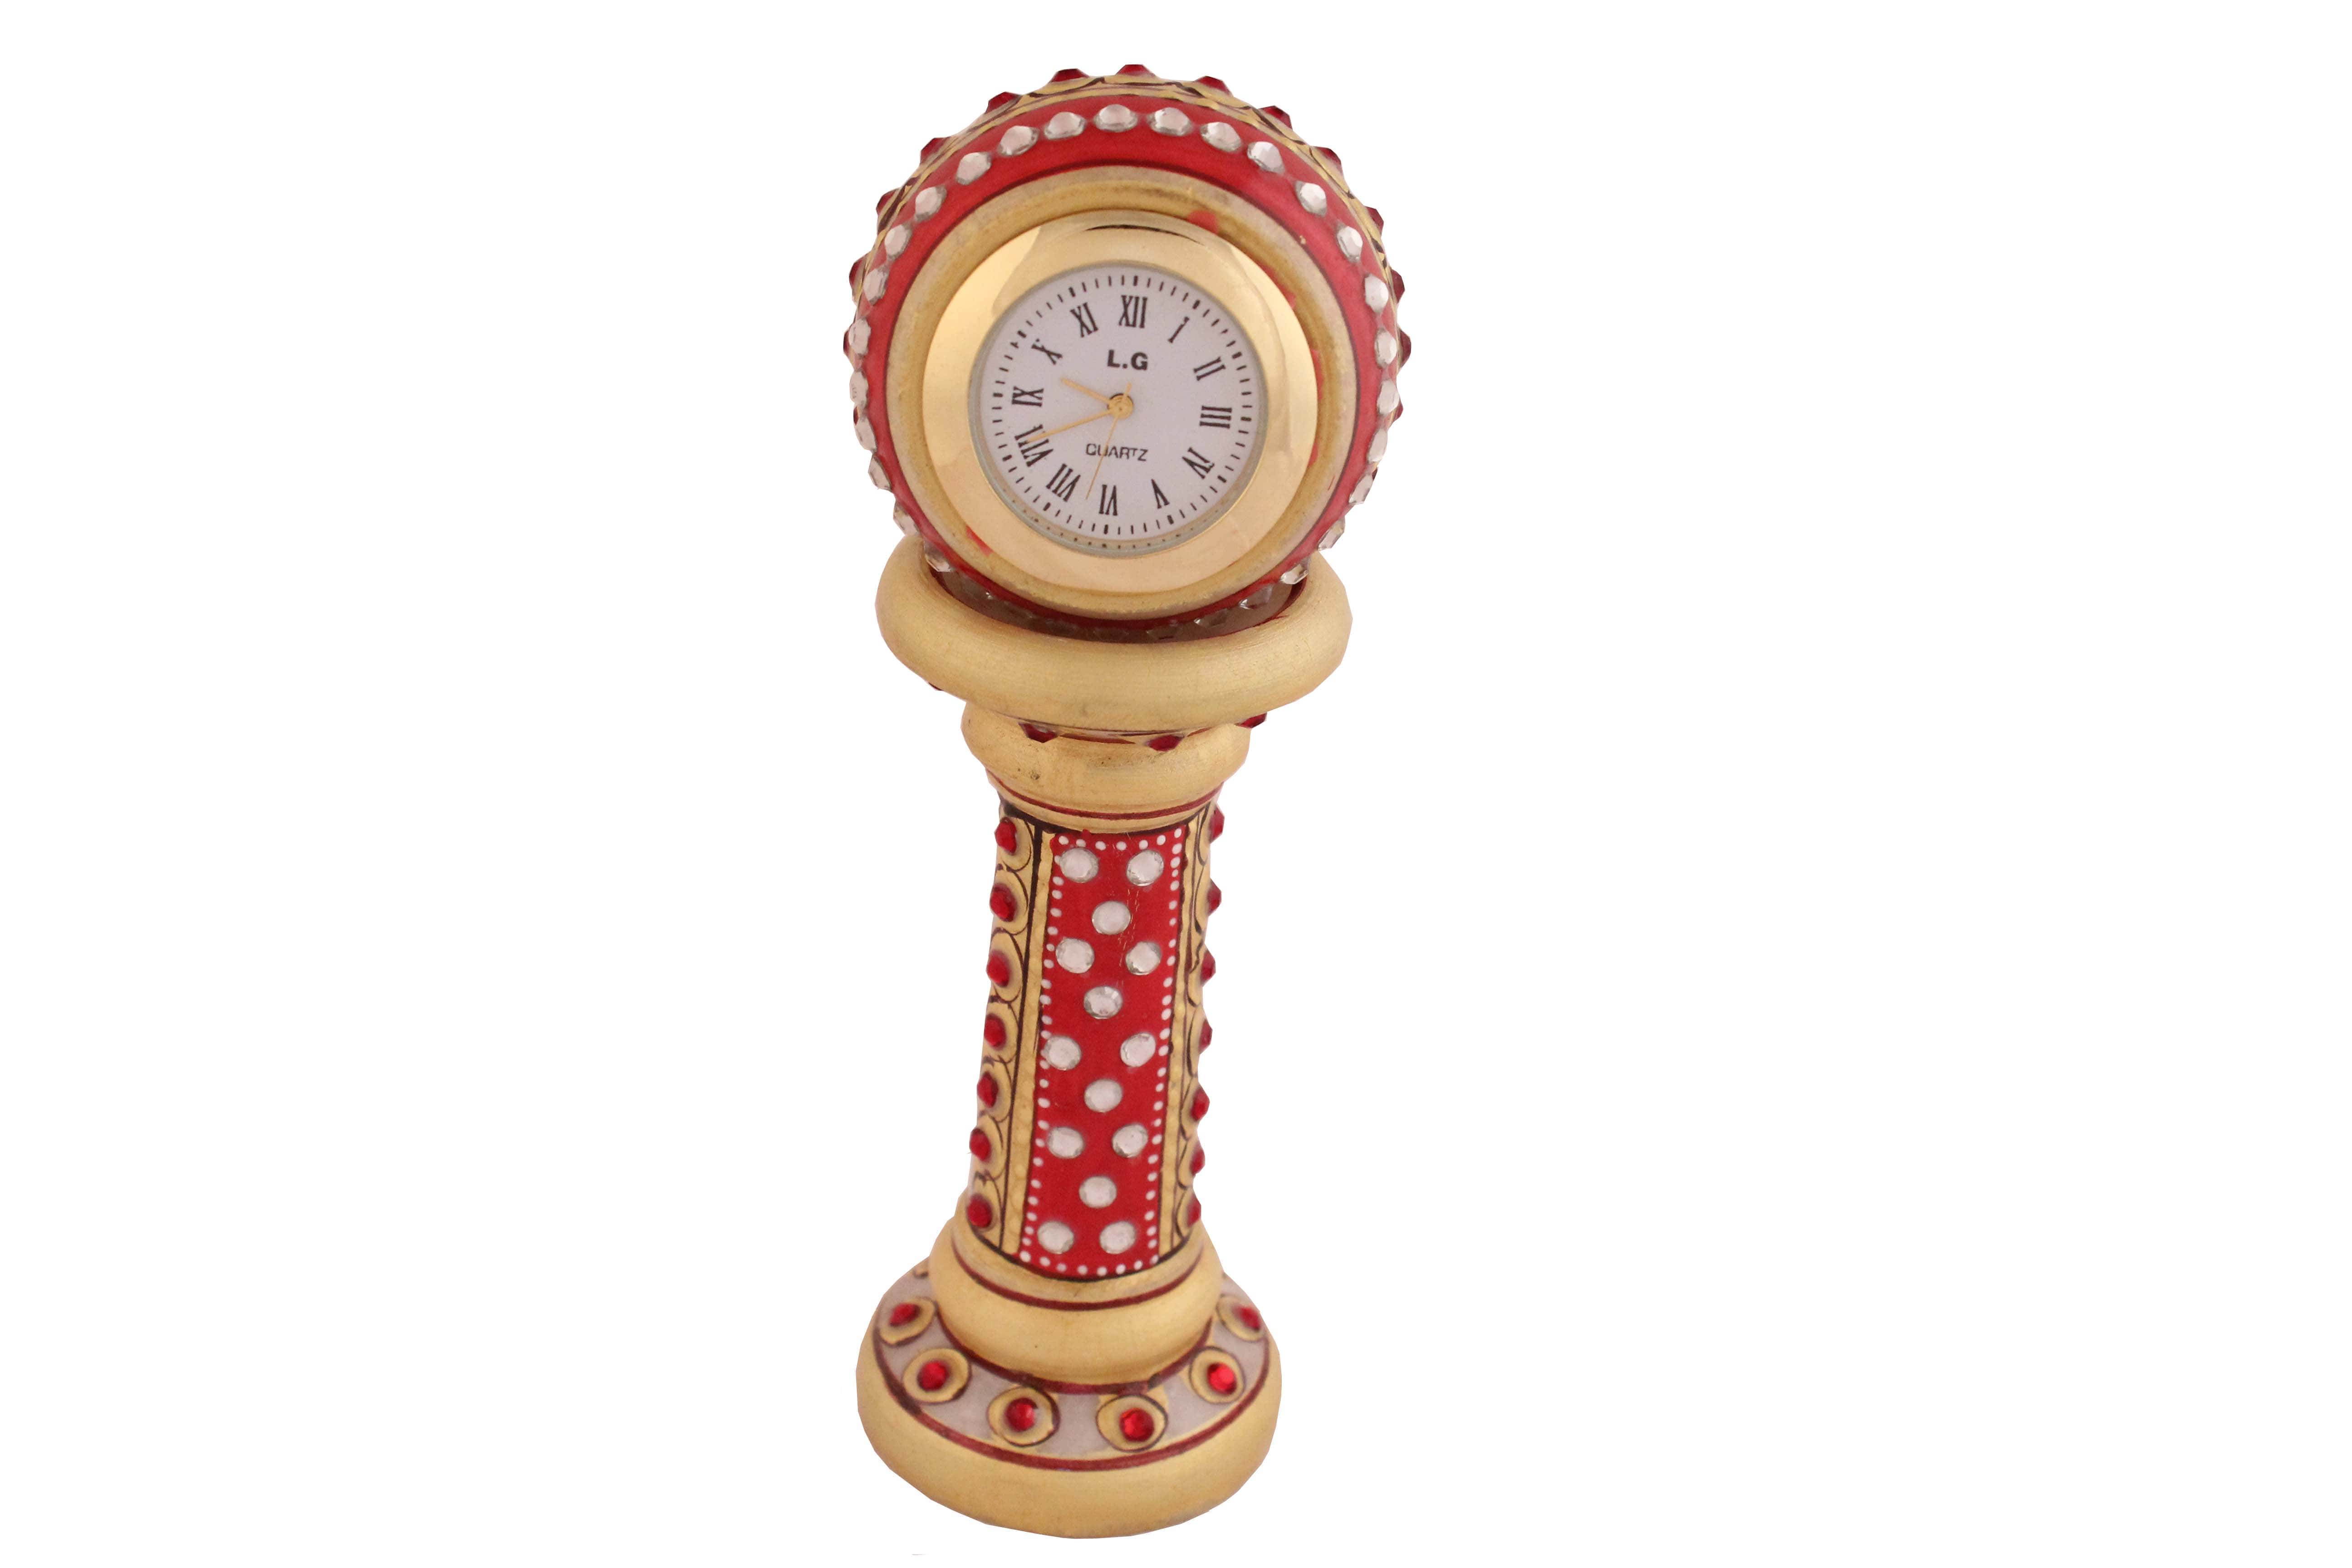 MARBLE PILLAER CLOCK ON HAND EMBOSS PAINTING